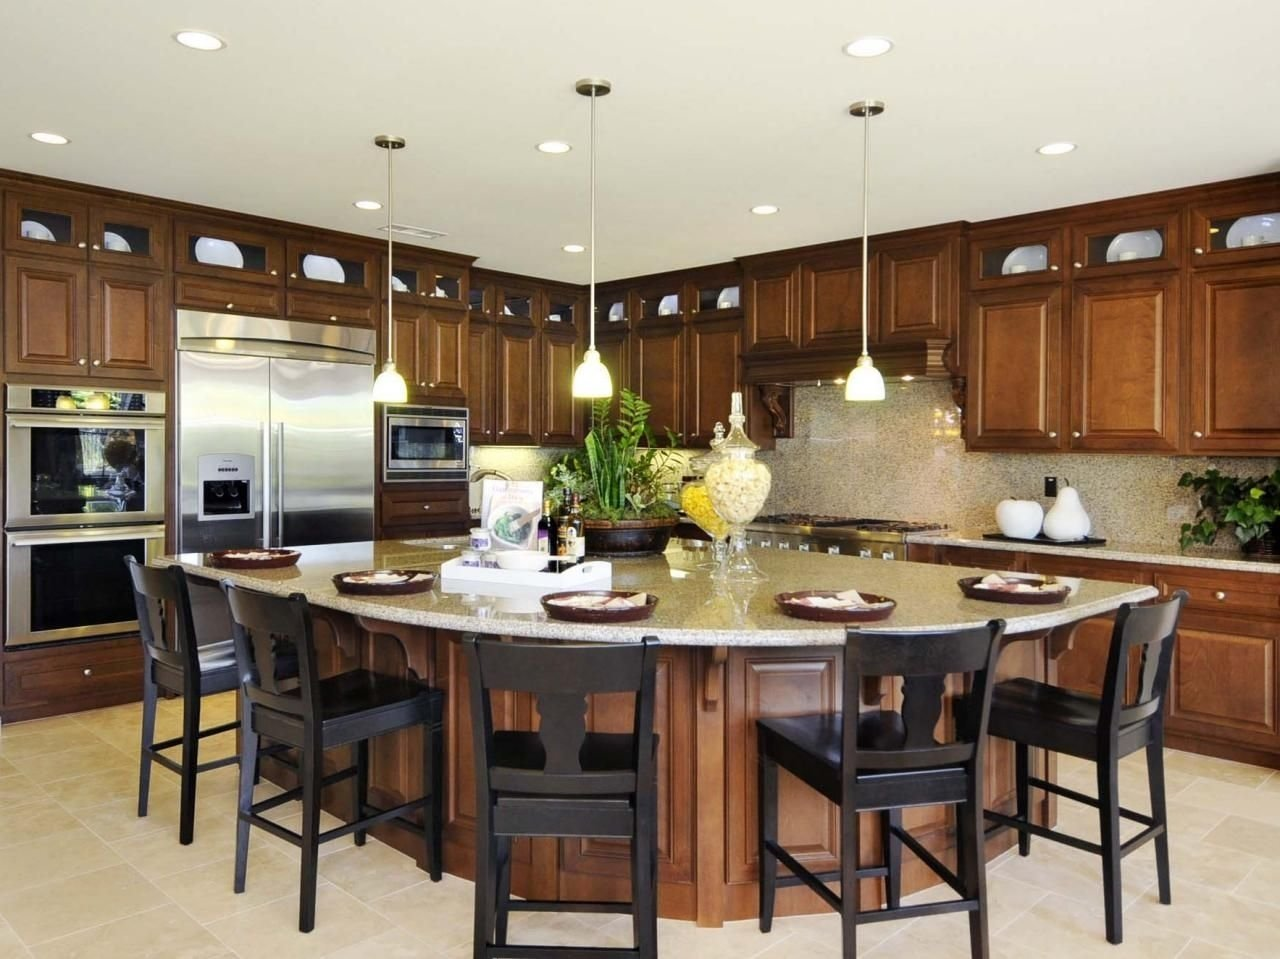 kitchen island design ideas: pictures, options & tips | island